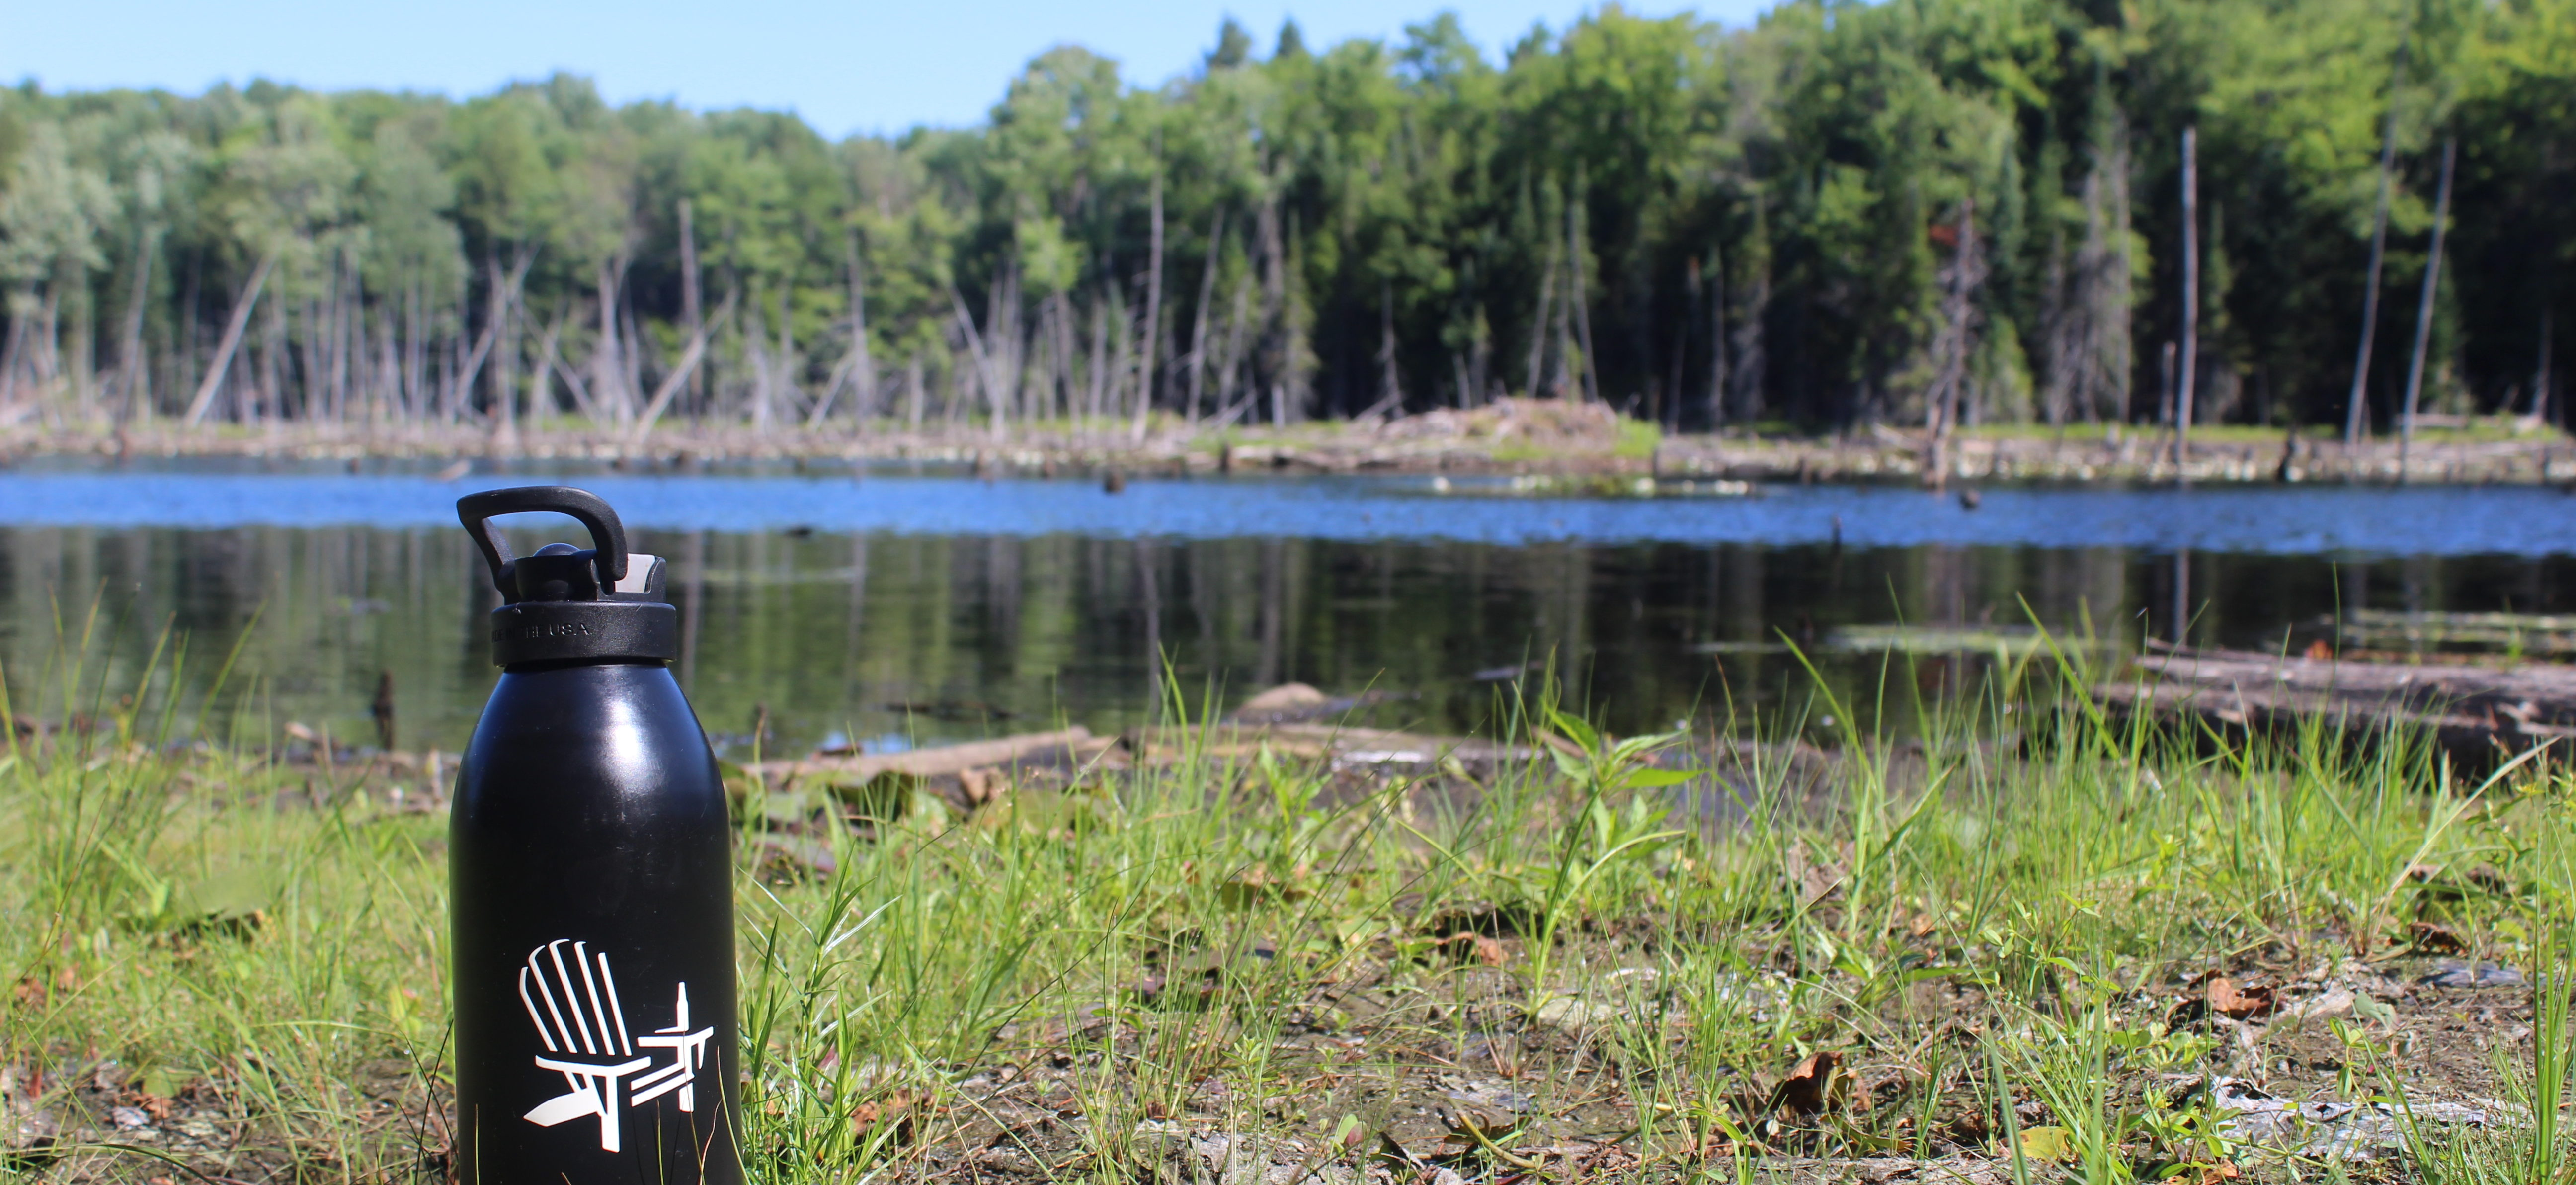 Muskoka Brewery bottle on the wetlands of Upjohn Conservation Area